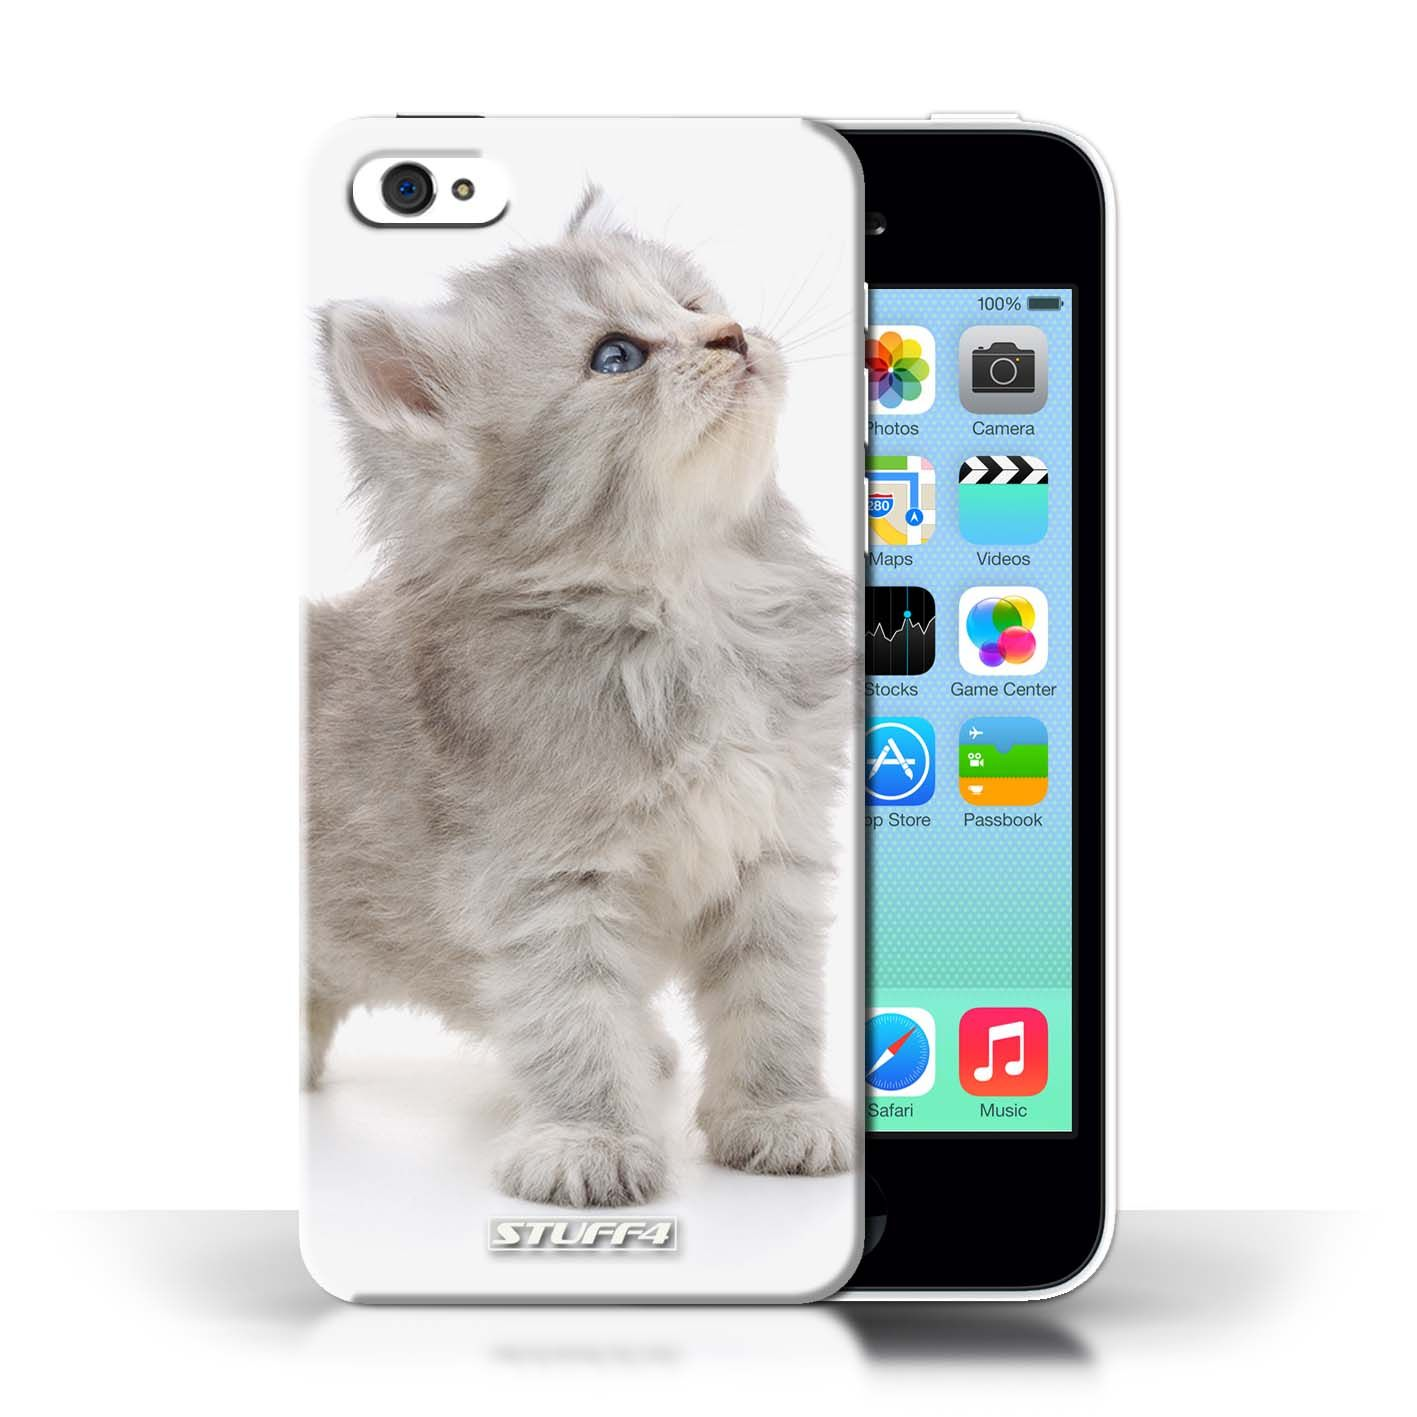 Looking Up Cute Kittens Design For Clear Hard Back Case Kittens Cutest Apple Iphone 5c Stuff4